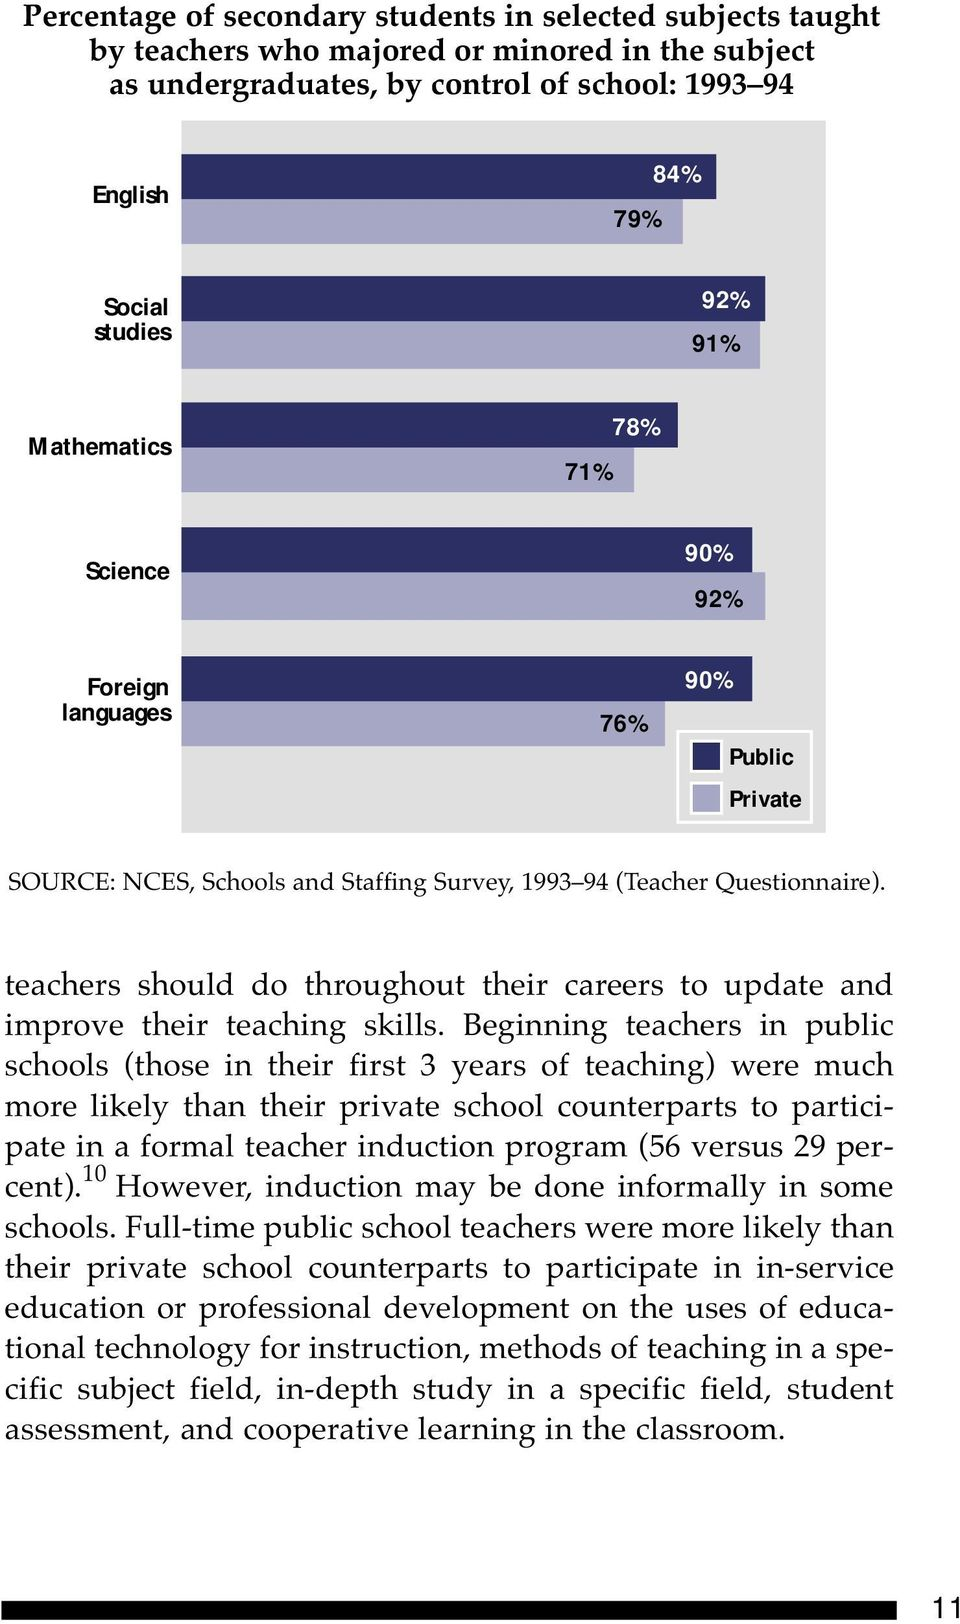 teachers should do throughout their careers to update and improve their teaching skills.